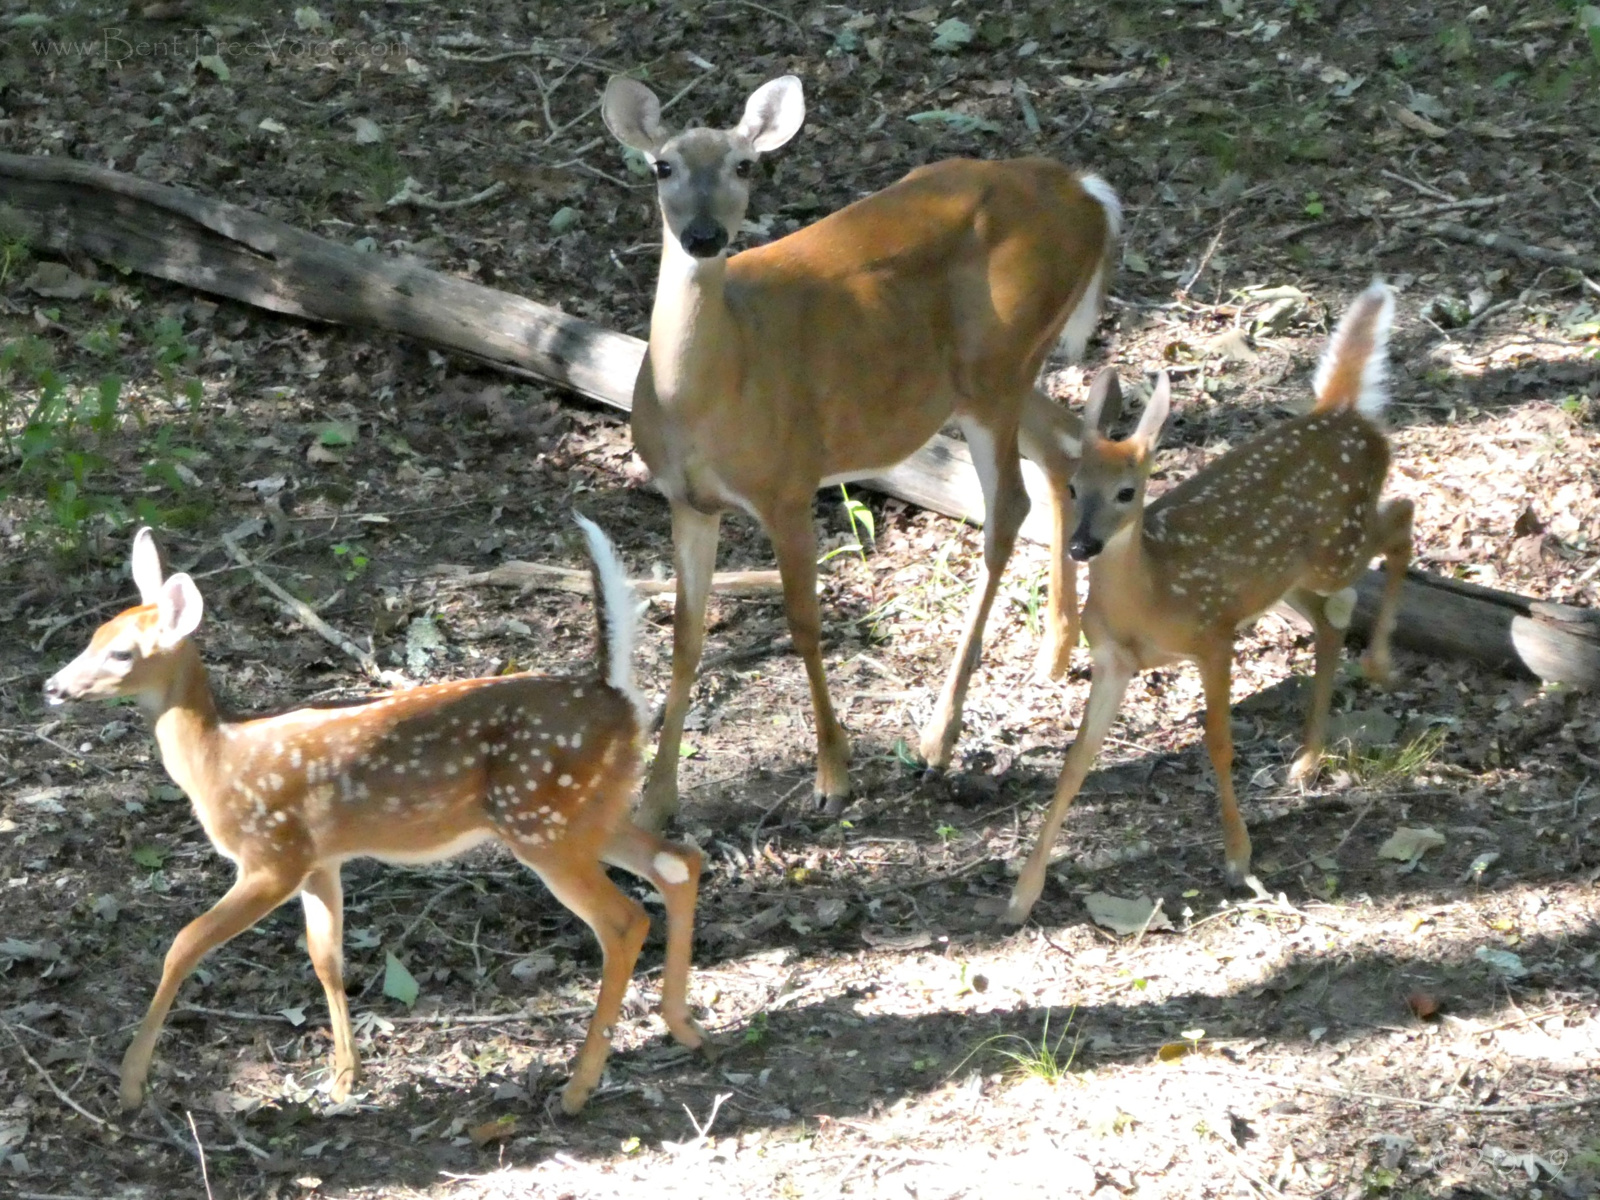 September 3, 2019 - Doe and fawns in Bent Tree